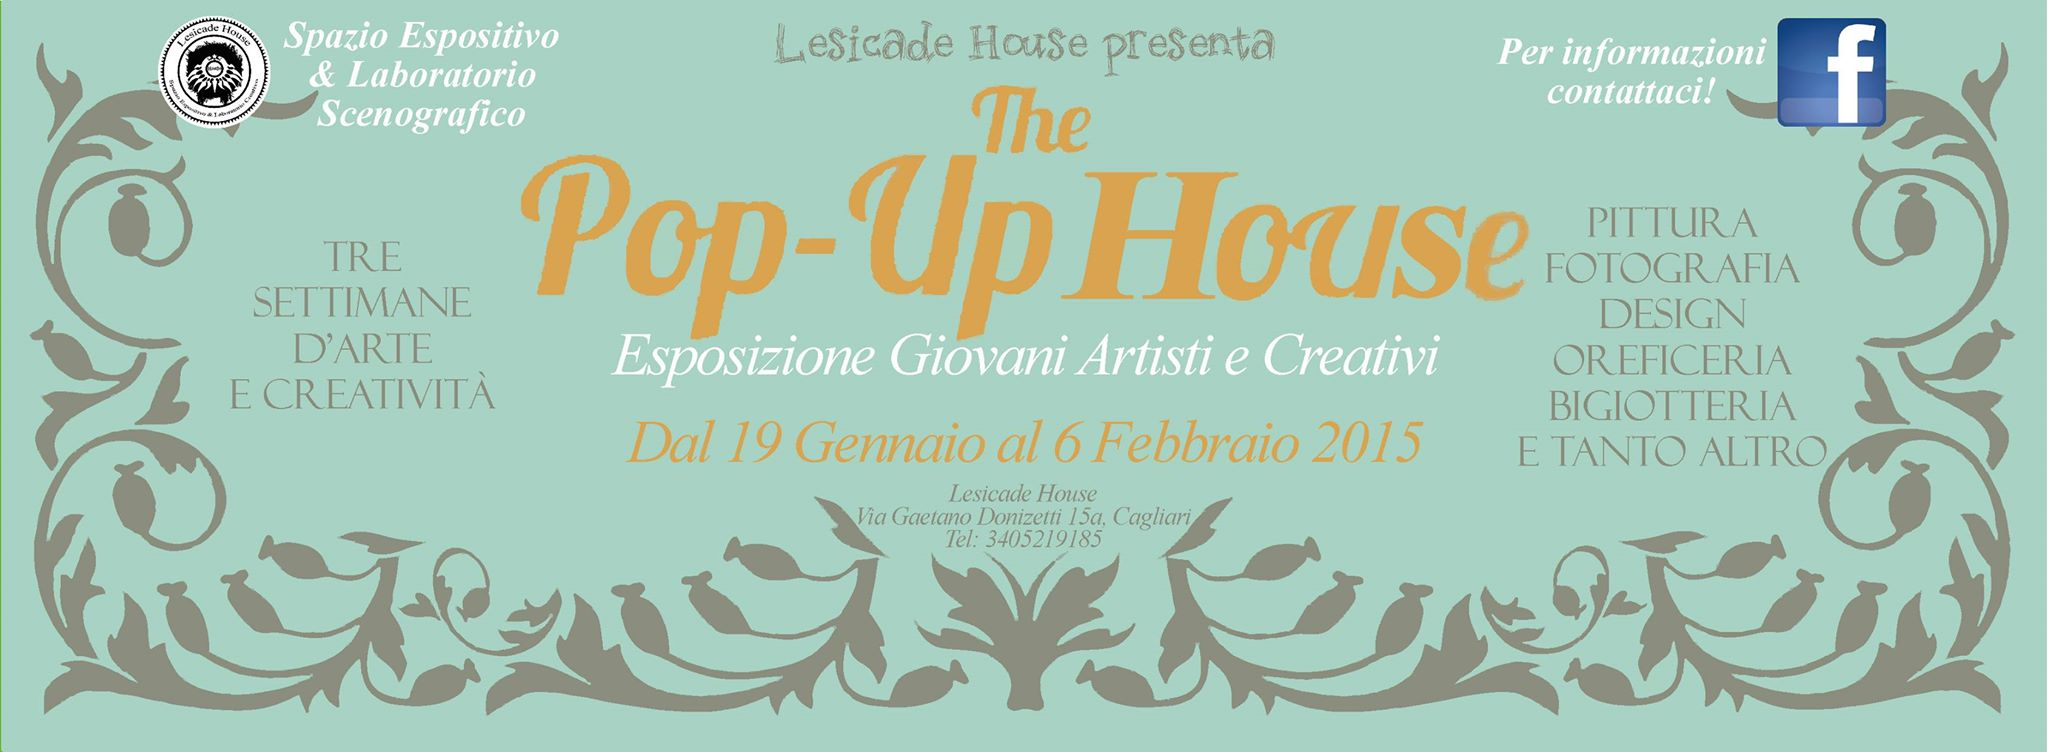 The Pop-Up house: la casa dei creativi